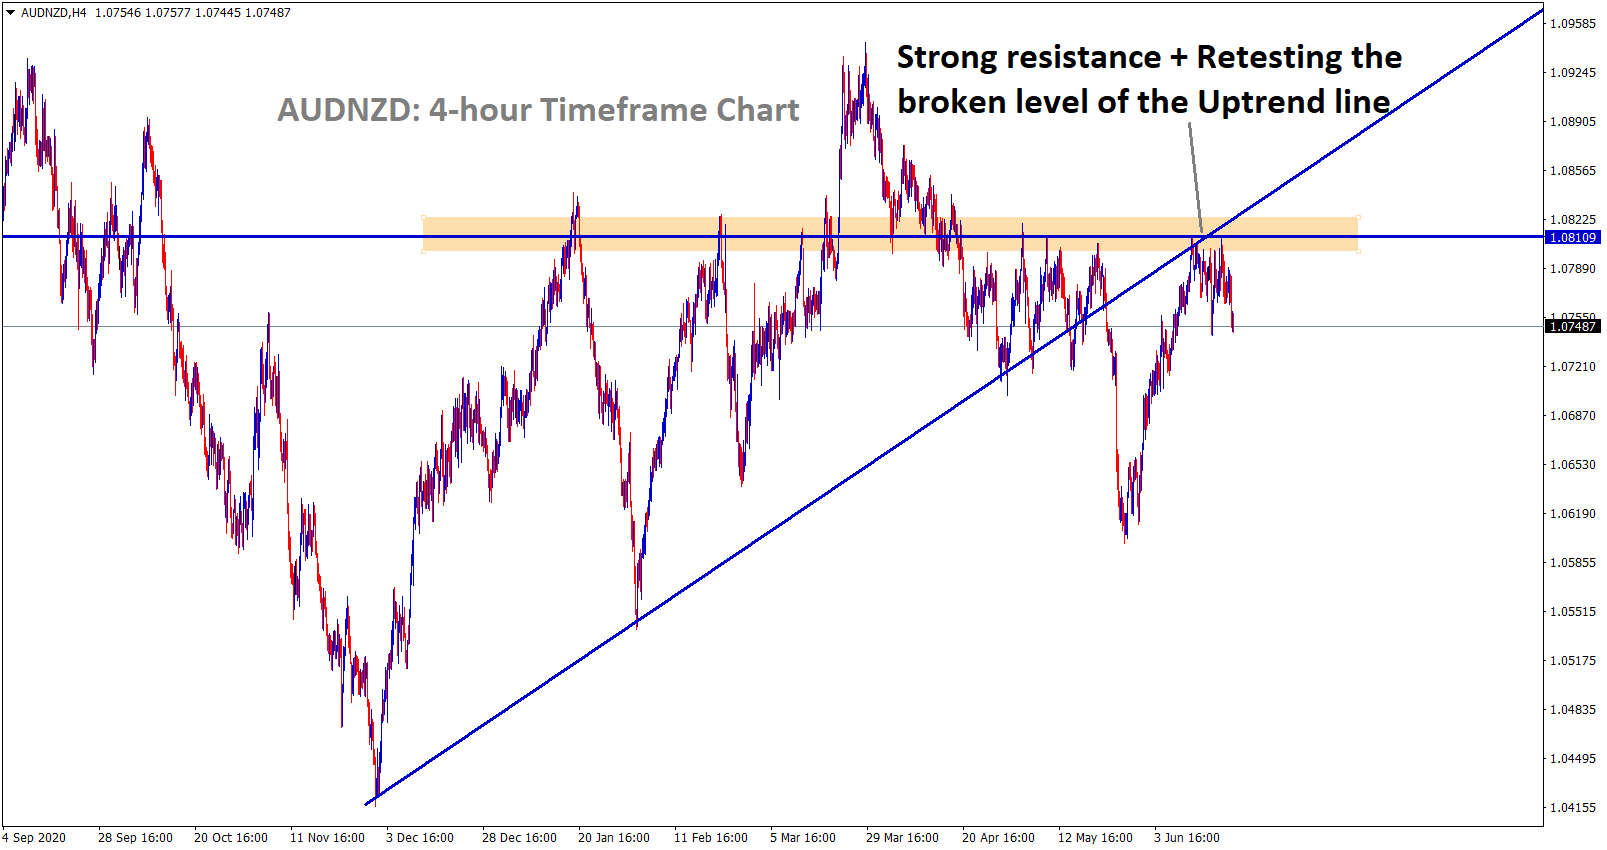 AUDNZD is falling after retesting the broken Uptrend line strong resistance zone